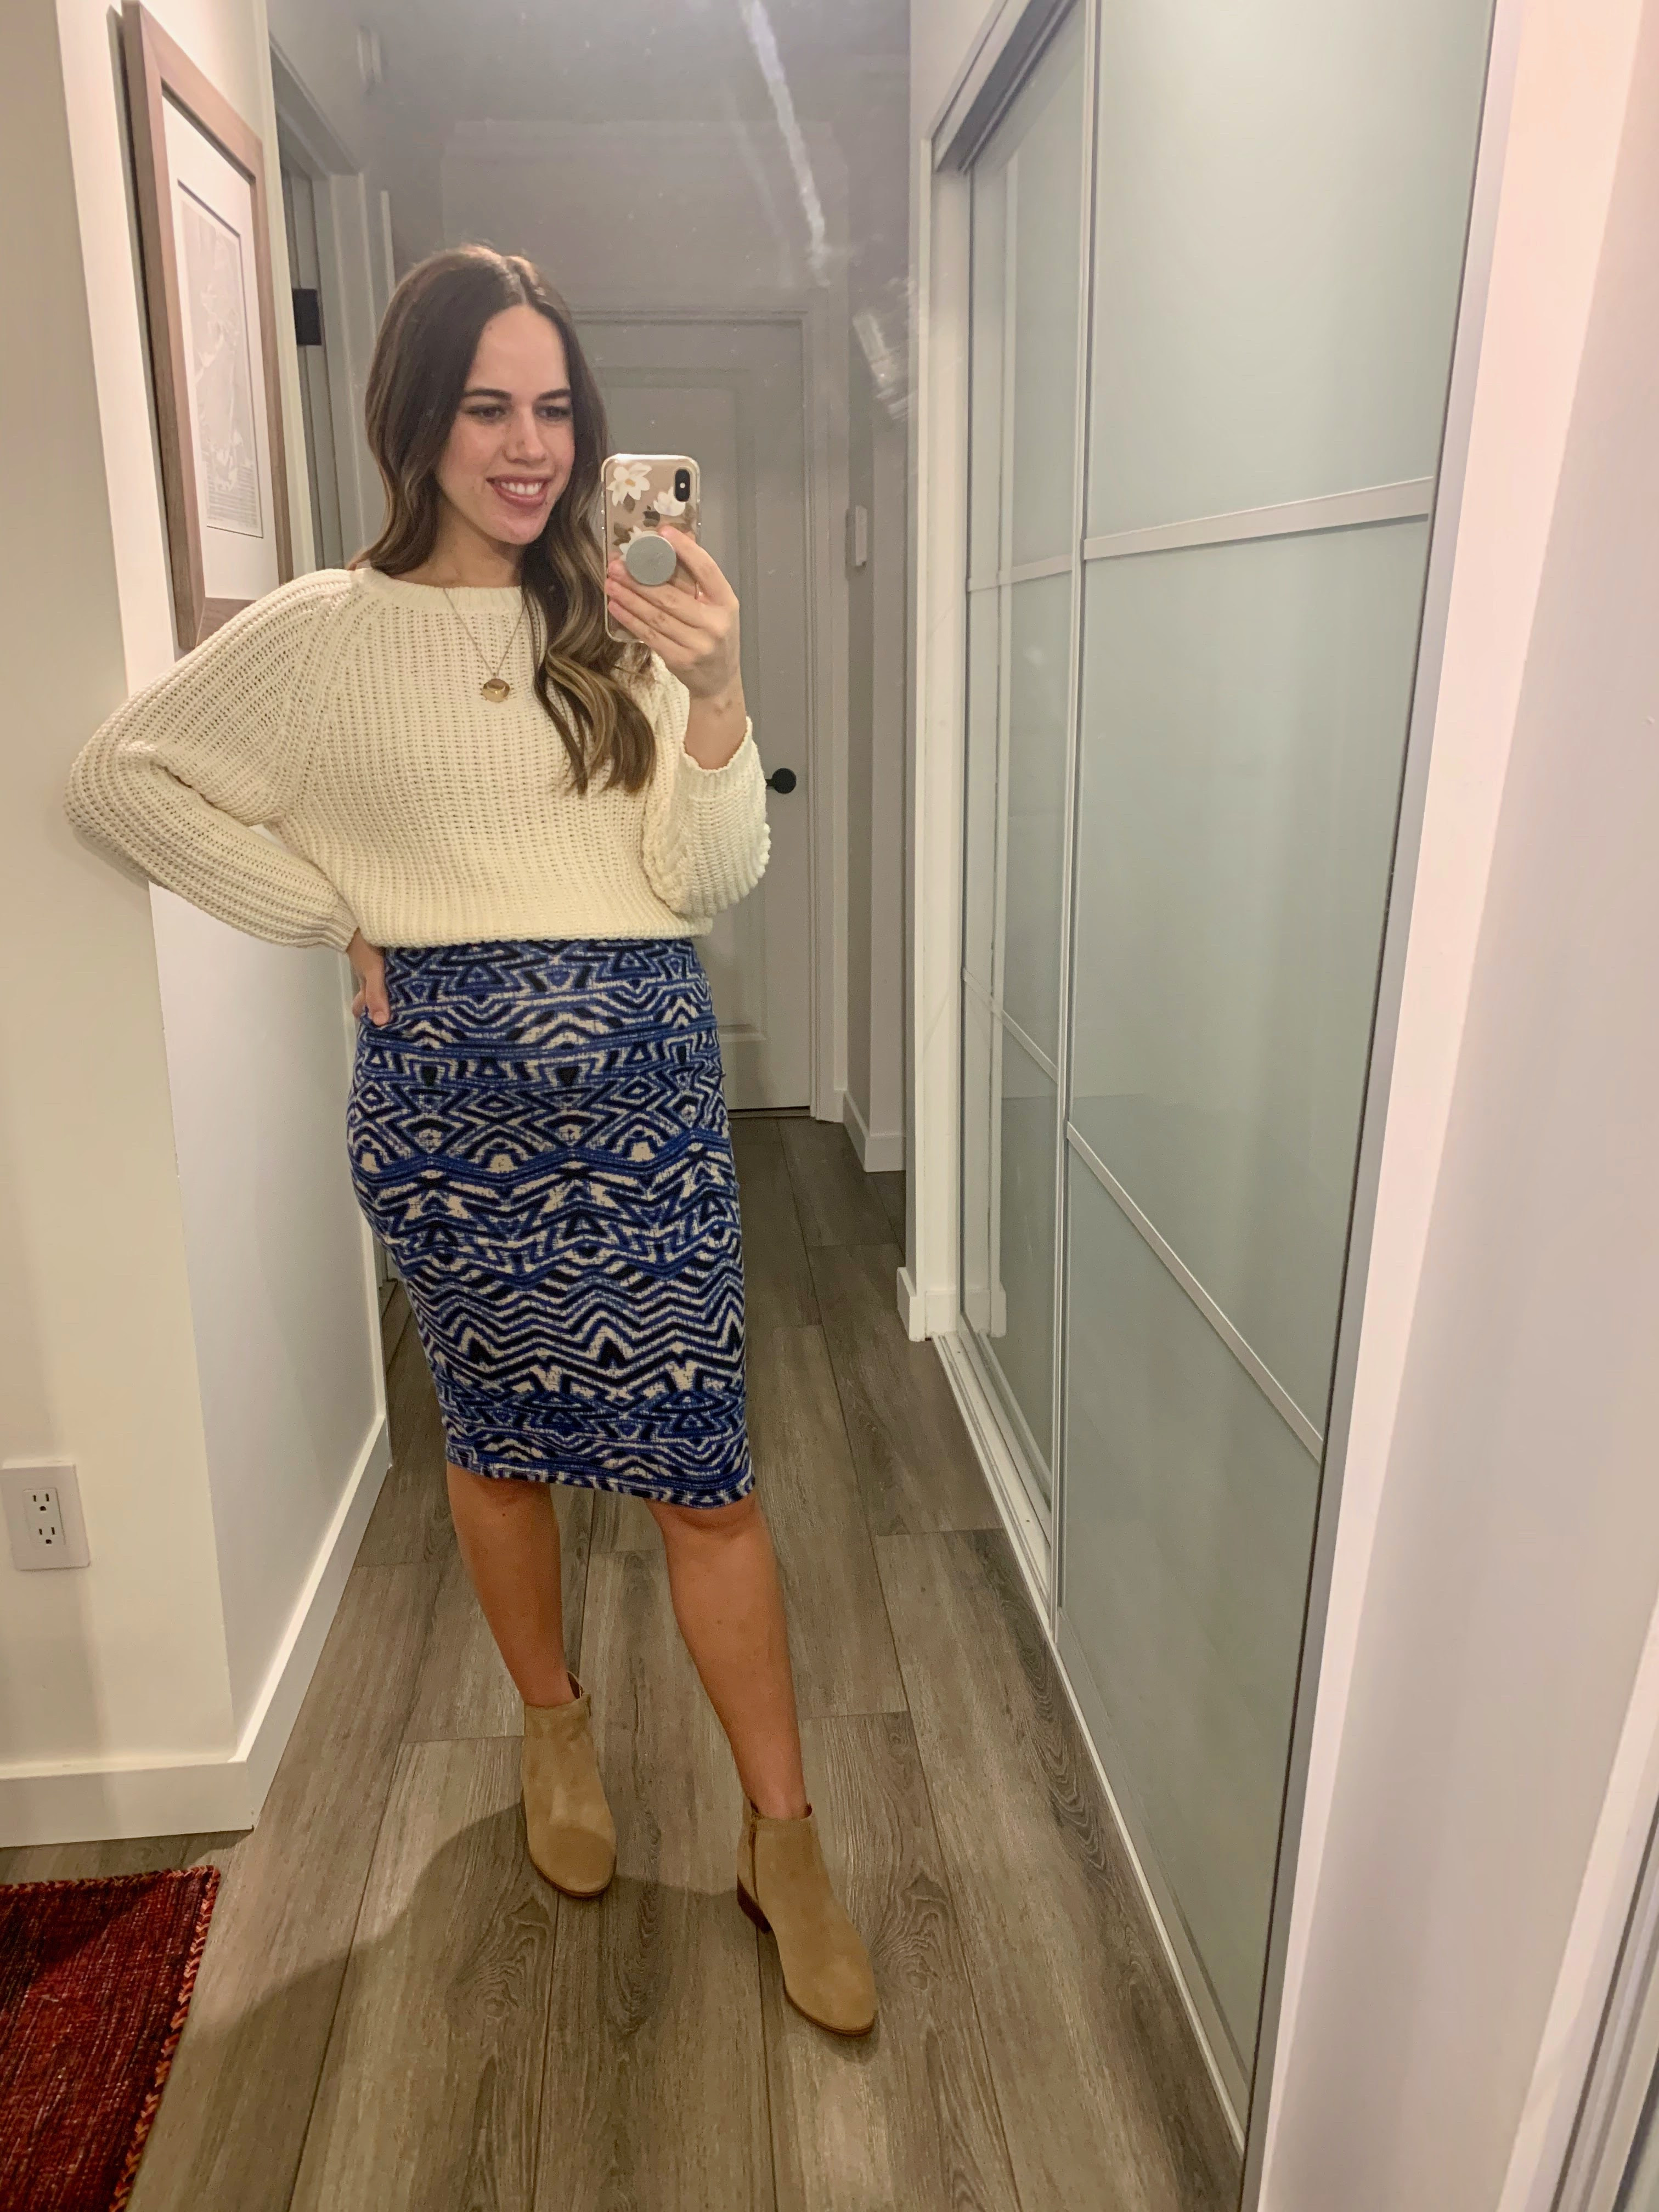 Jules in Flats - Jersey Midi Skirt with Cropped Knit Sweater (Business Casual Workwear on a Budget)